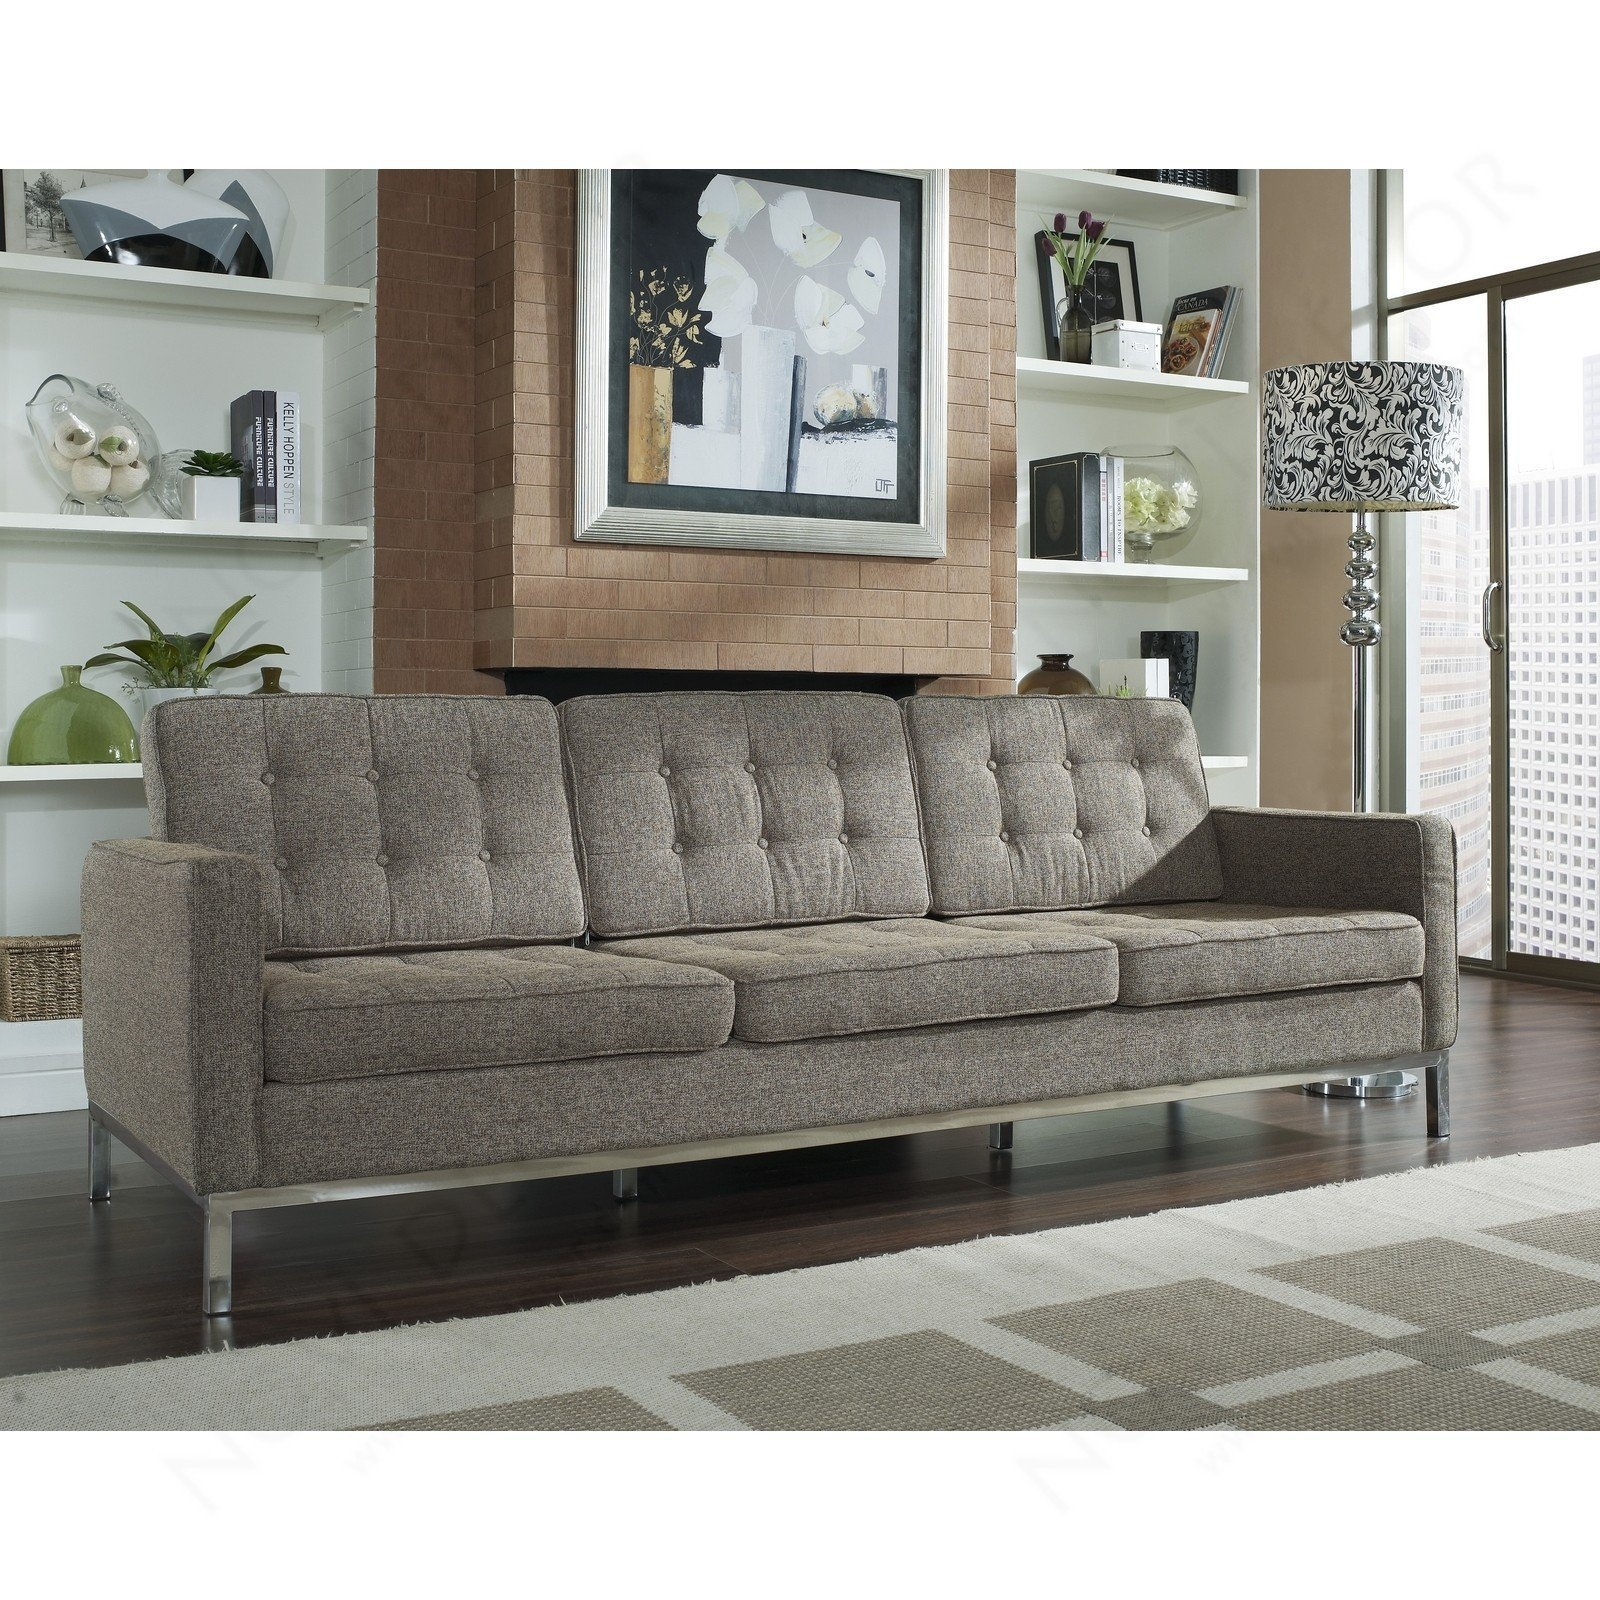 Florence Style Sofa In Wool Multiple Colors Designer Reproduction Throughout Florence Large Sofas (Image 8 of 15)